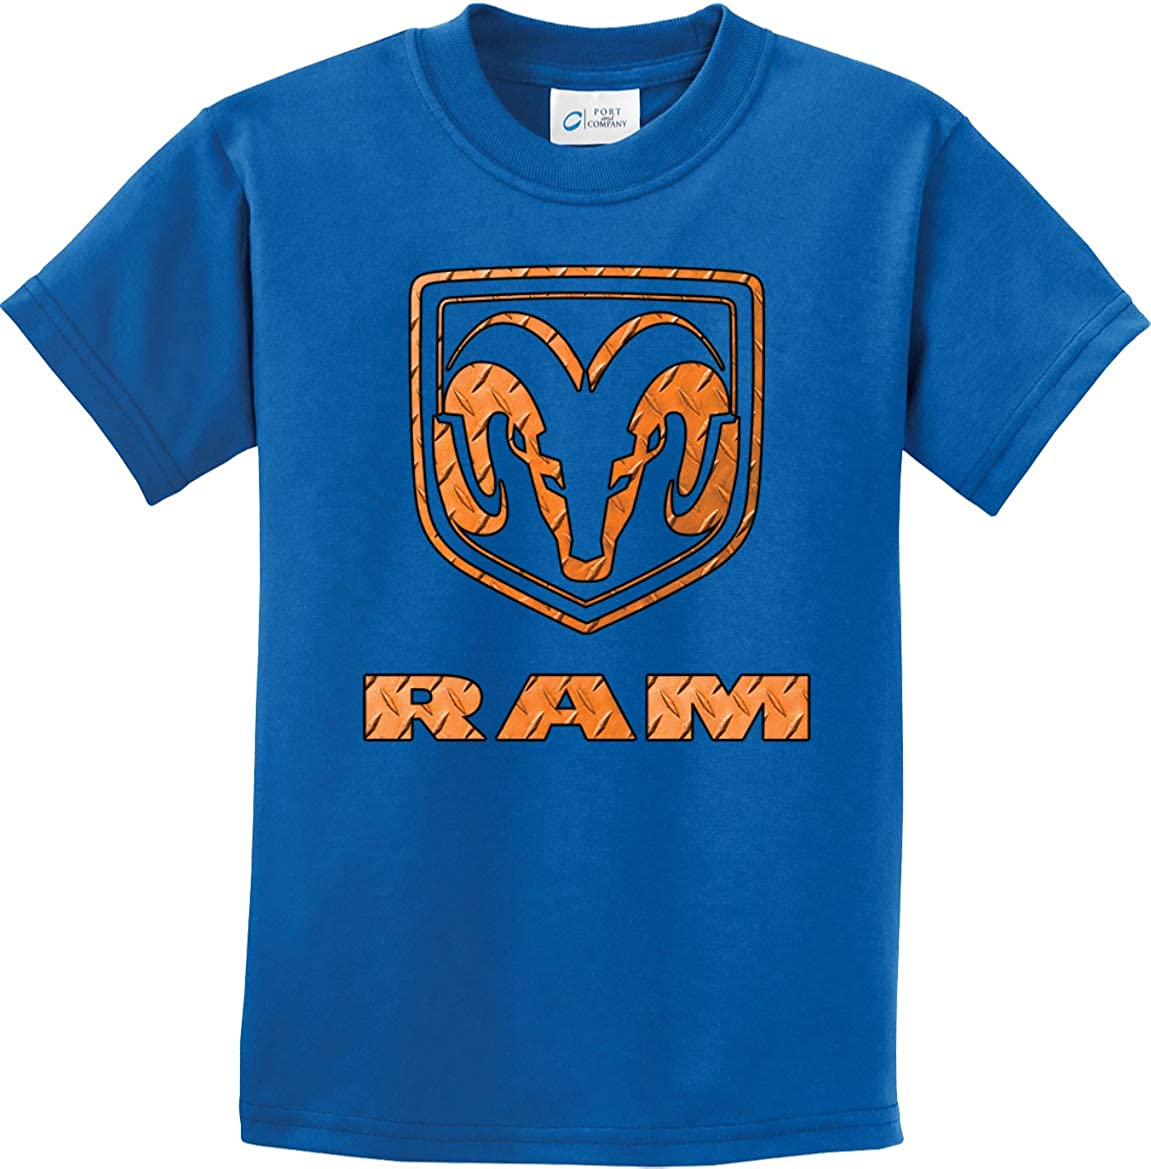 Kids Dodge Ram T-Shirt Diamond Plate Logo Youth Tee